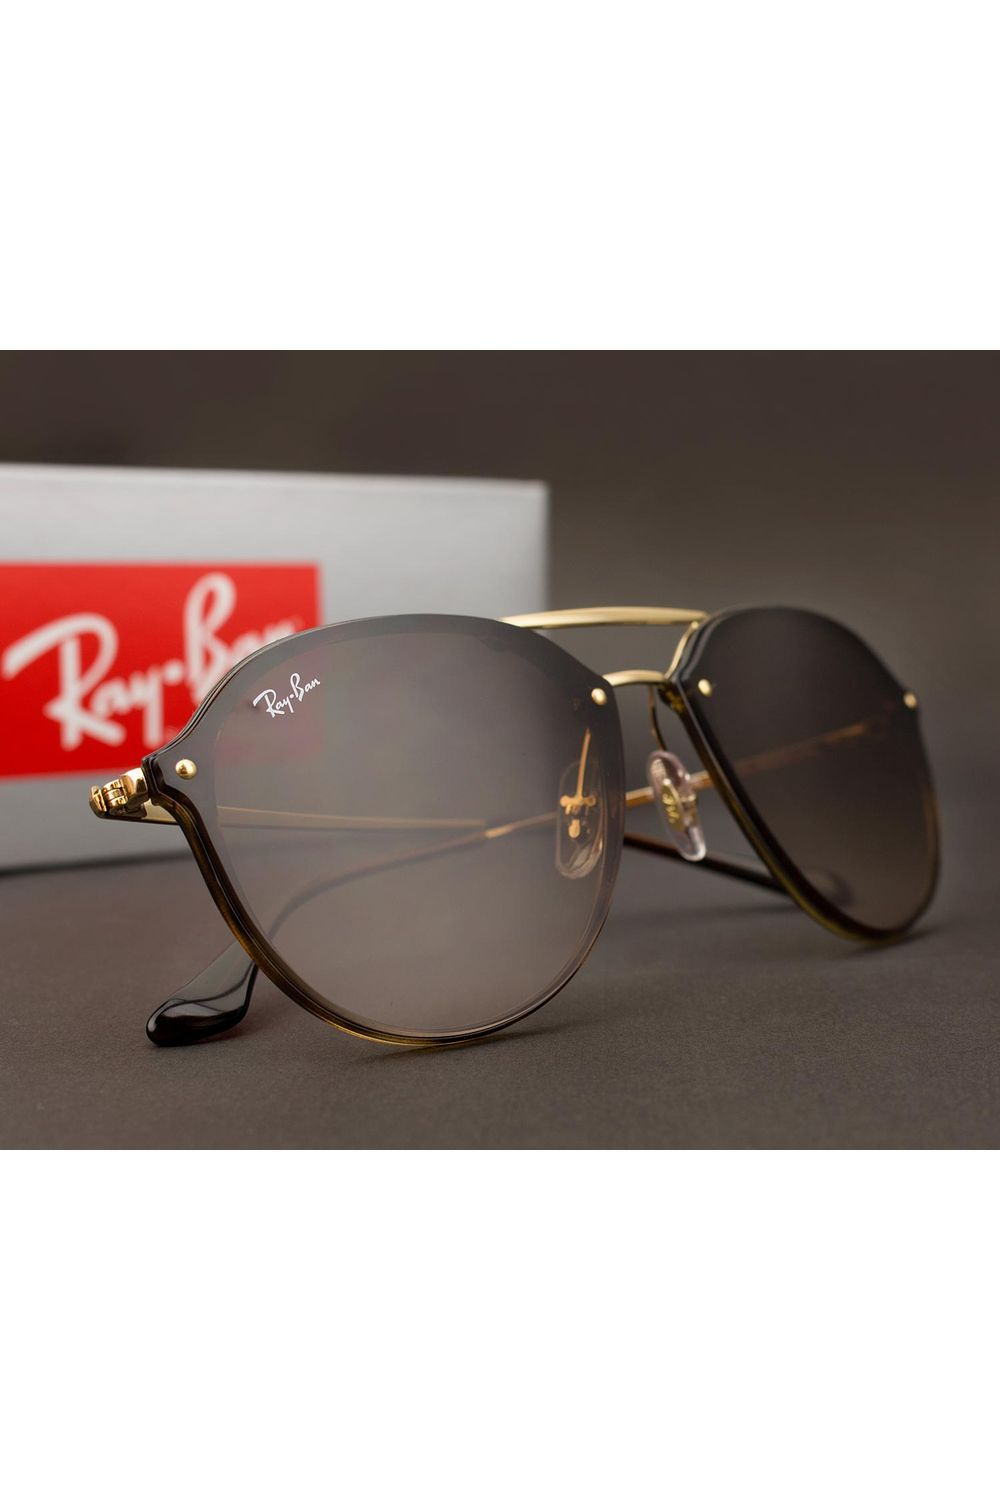 cda7730eecf20 Óculos de Sol Ray Ban Blaze Double Bridge RB4292N 710 13-62 ...